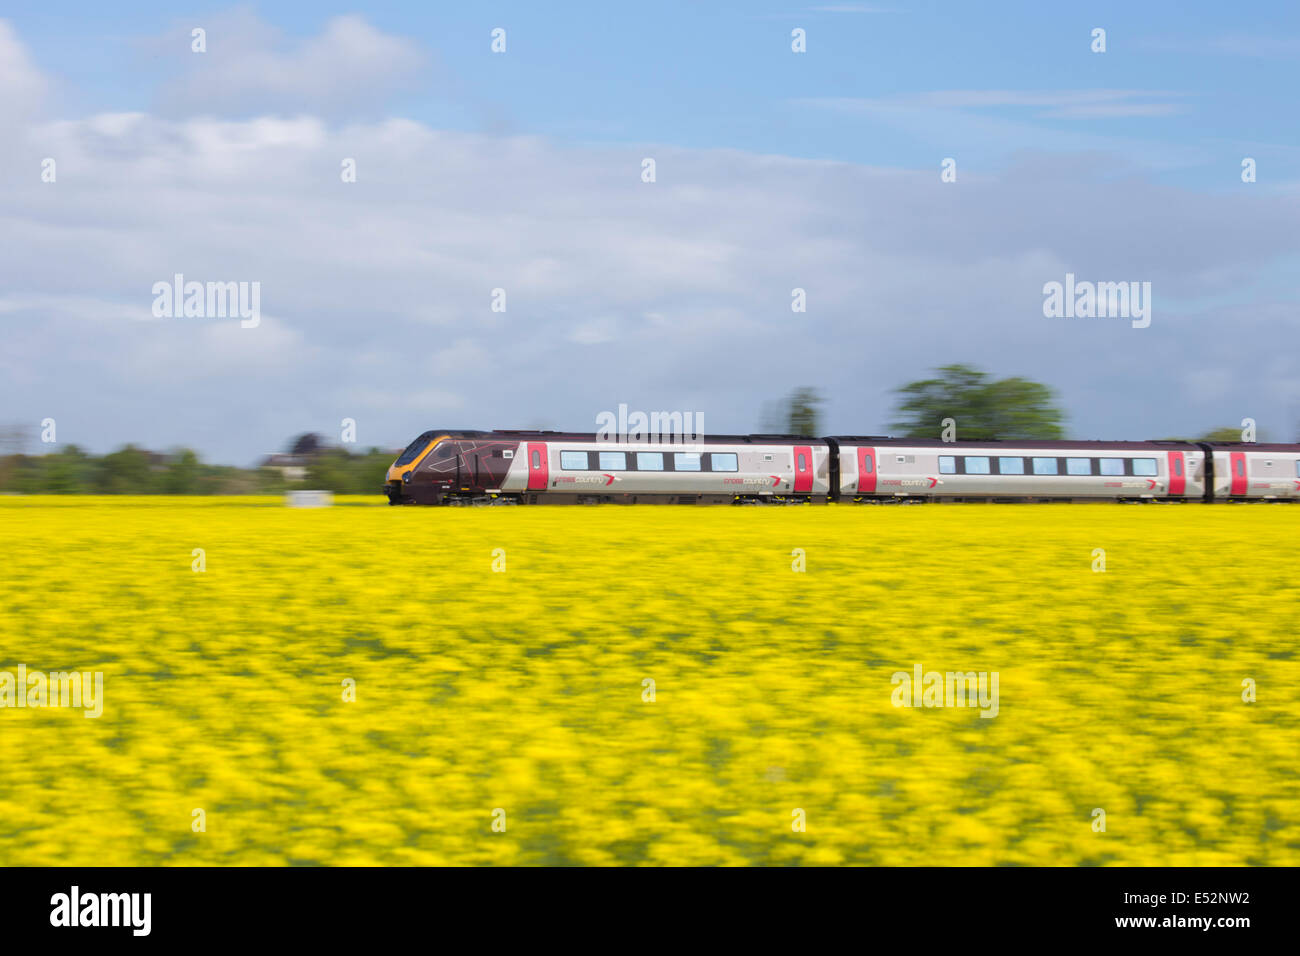 Cross Country train, Great Britain, UK - Stock Image